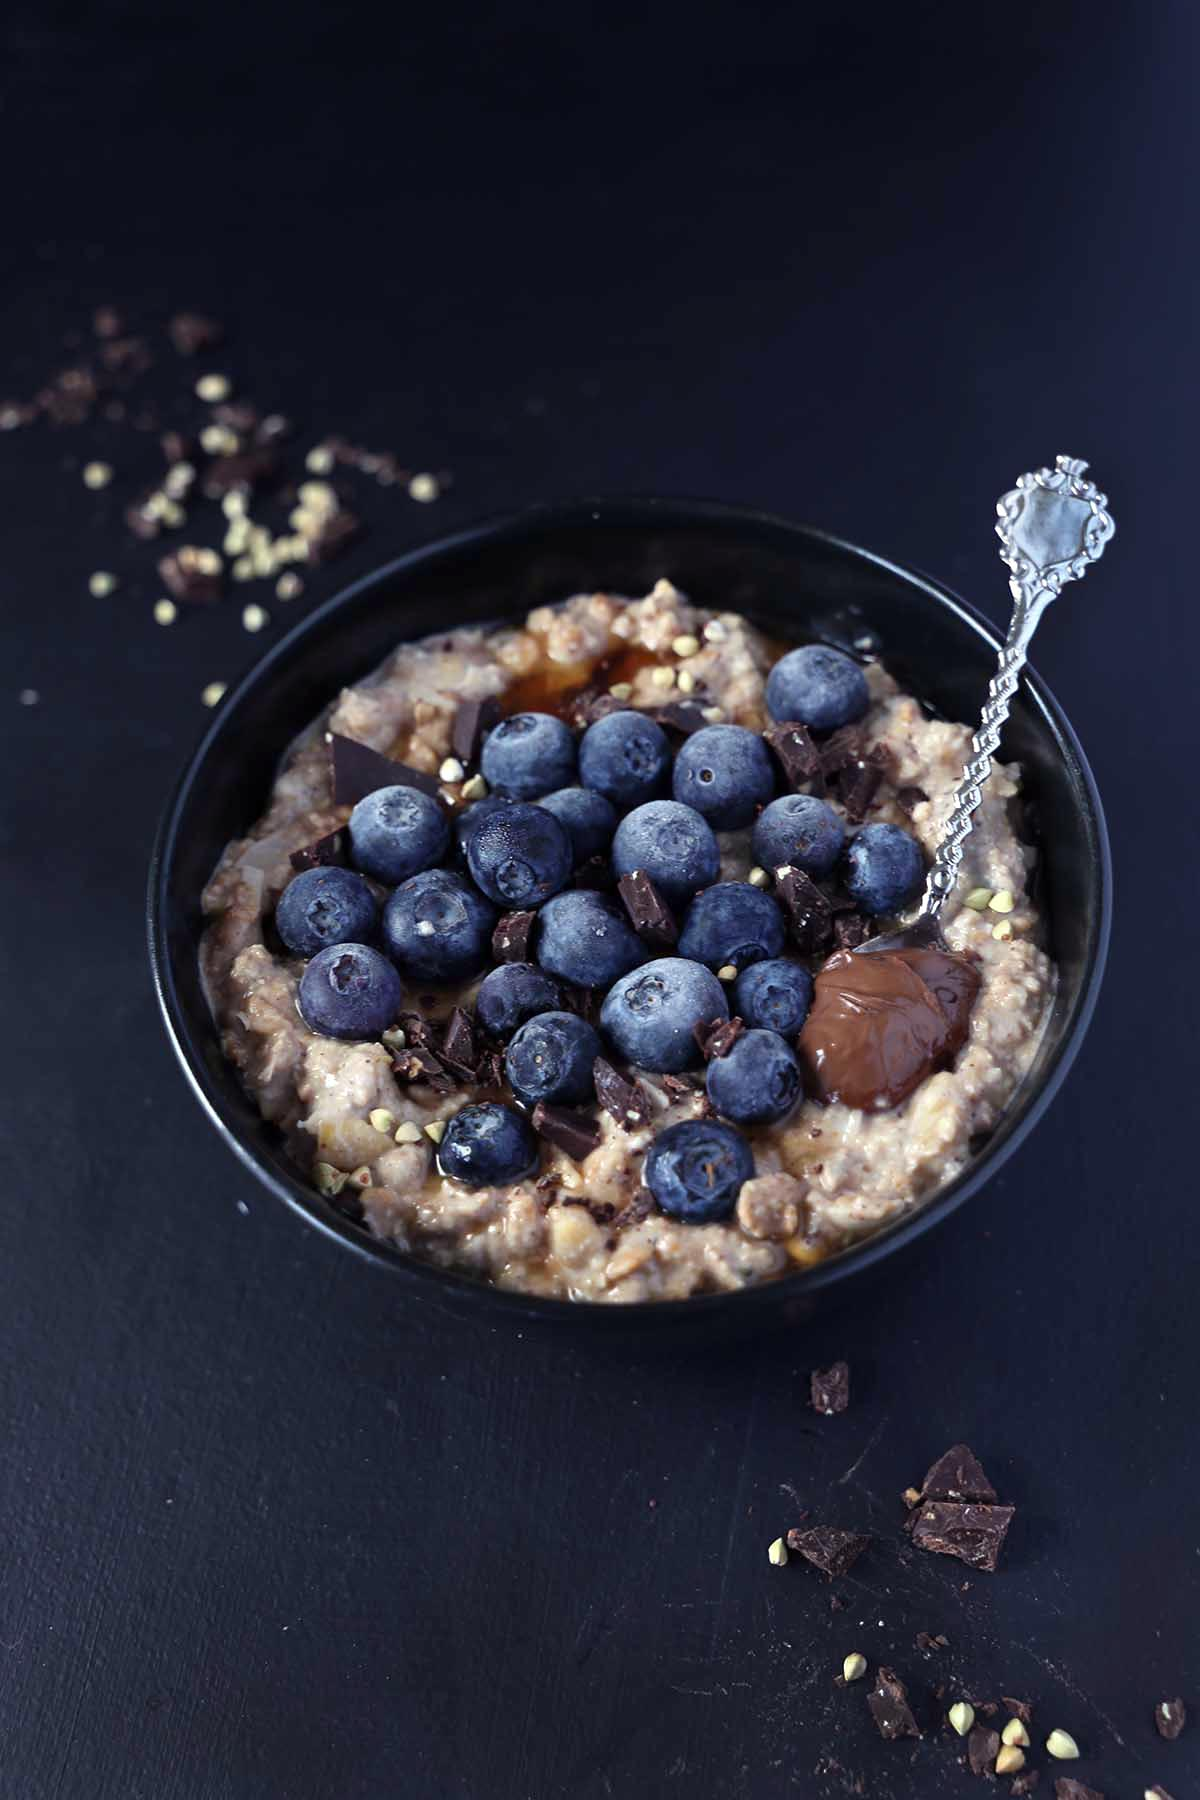 Super creamy chocolate oatmeal {vg, gf, refined sugarfree}